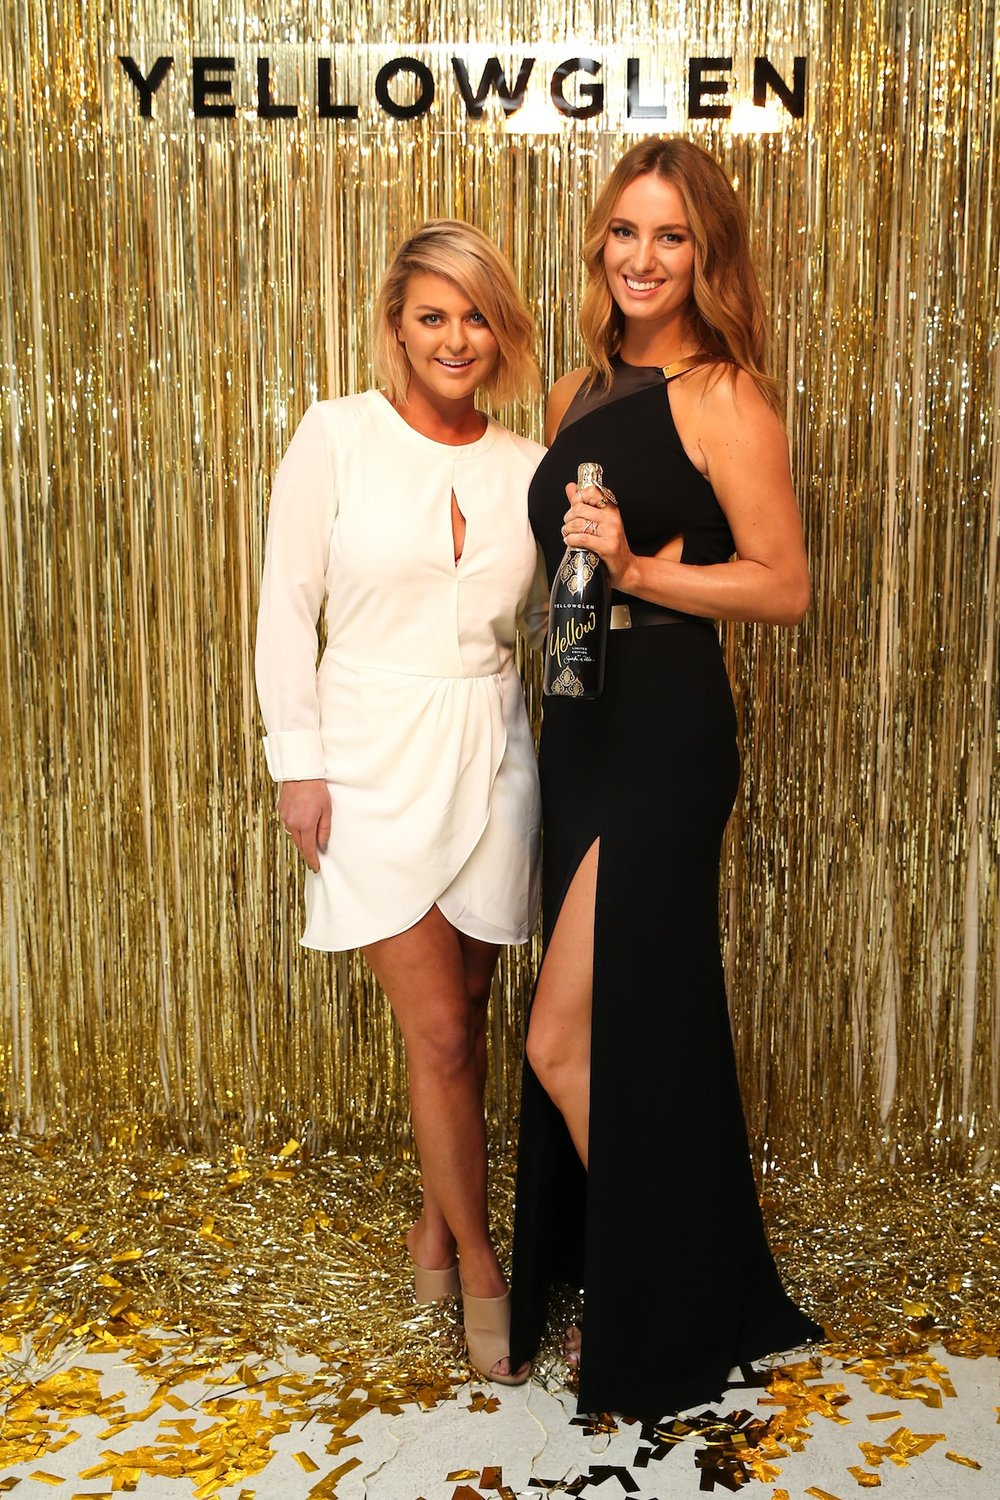 yellowglen-sparkle-launch-emma-clapham-samantha-wills.jpg